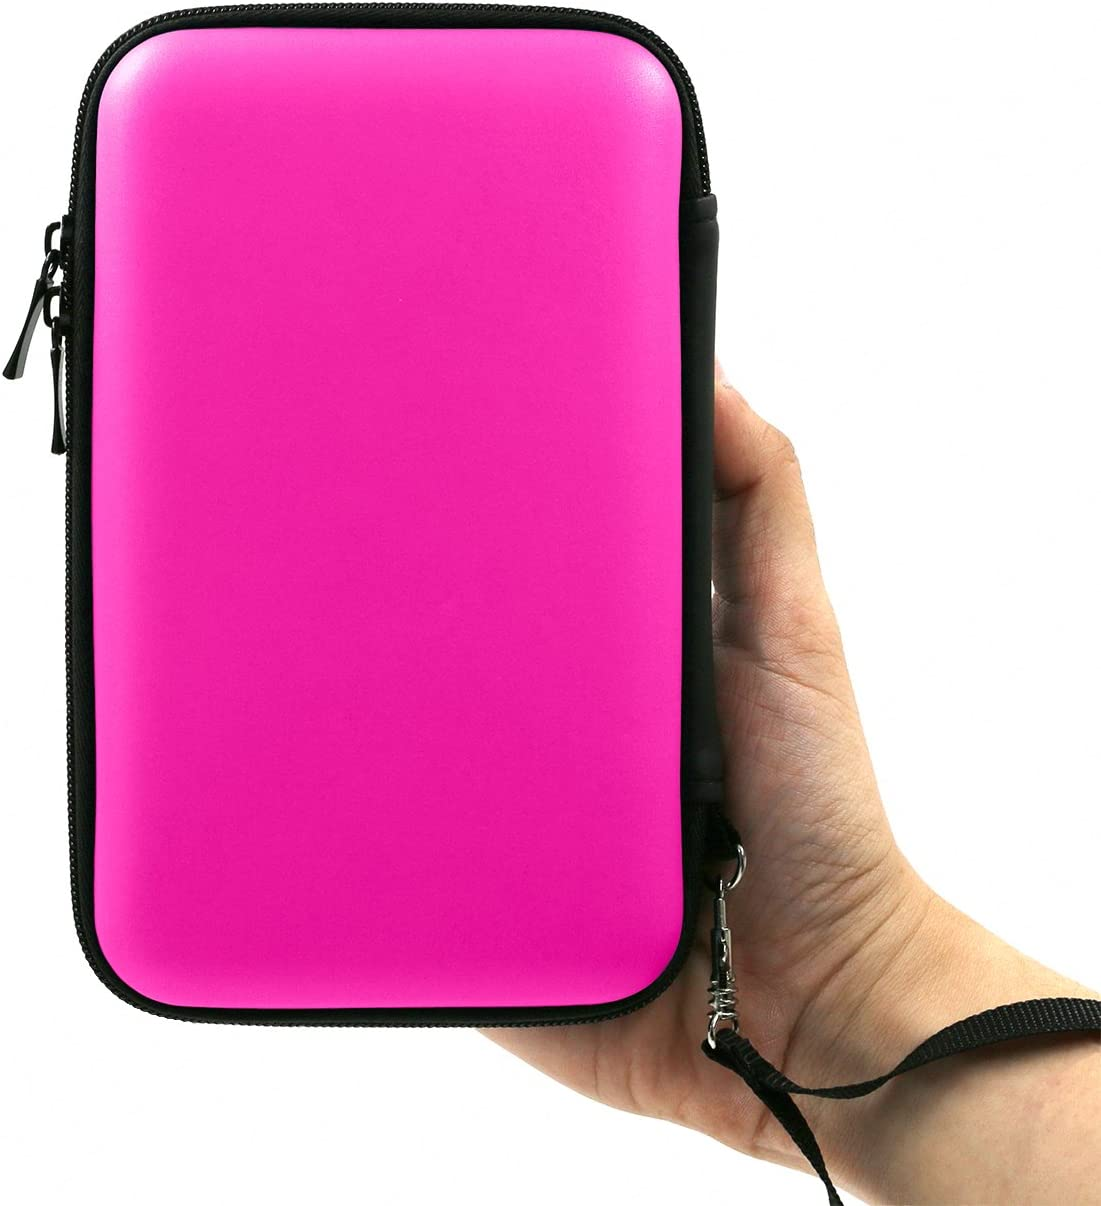 ADVcer 3DS Case, EVA Waterproof Hard Shield Protective Carrying Case with Detachable Hand Wrist Strap for Nintendo New 3DS XL, New 3DS, 3DS, 3DS XL, 3DS LL, DSi, Dsi XL, DS, DS Lite or 2DS XL, Fuchsia